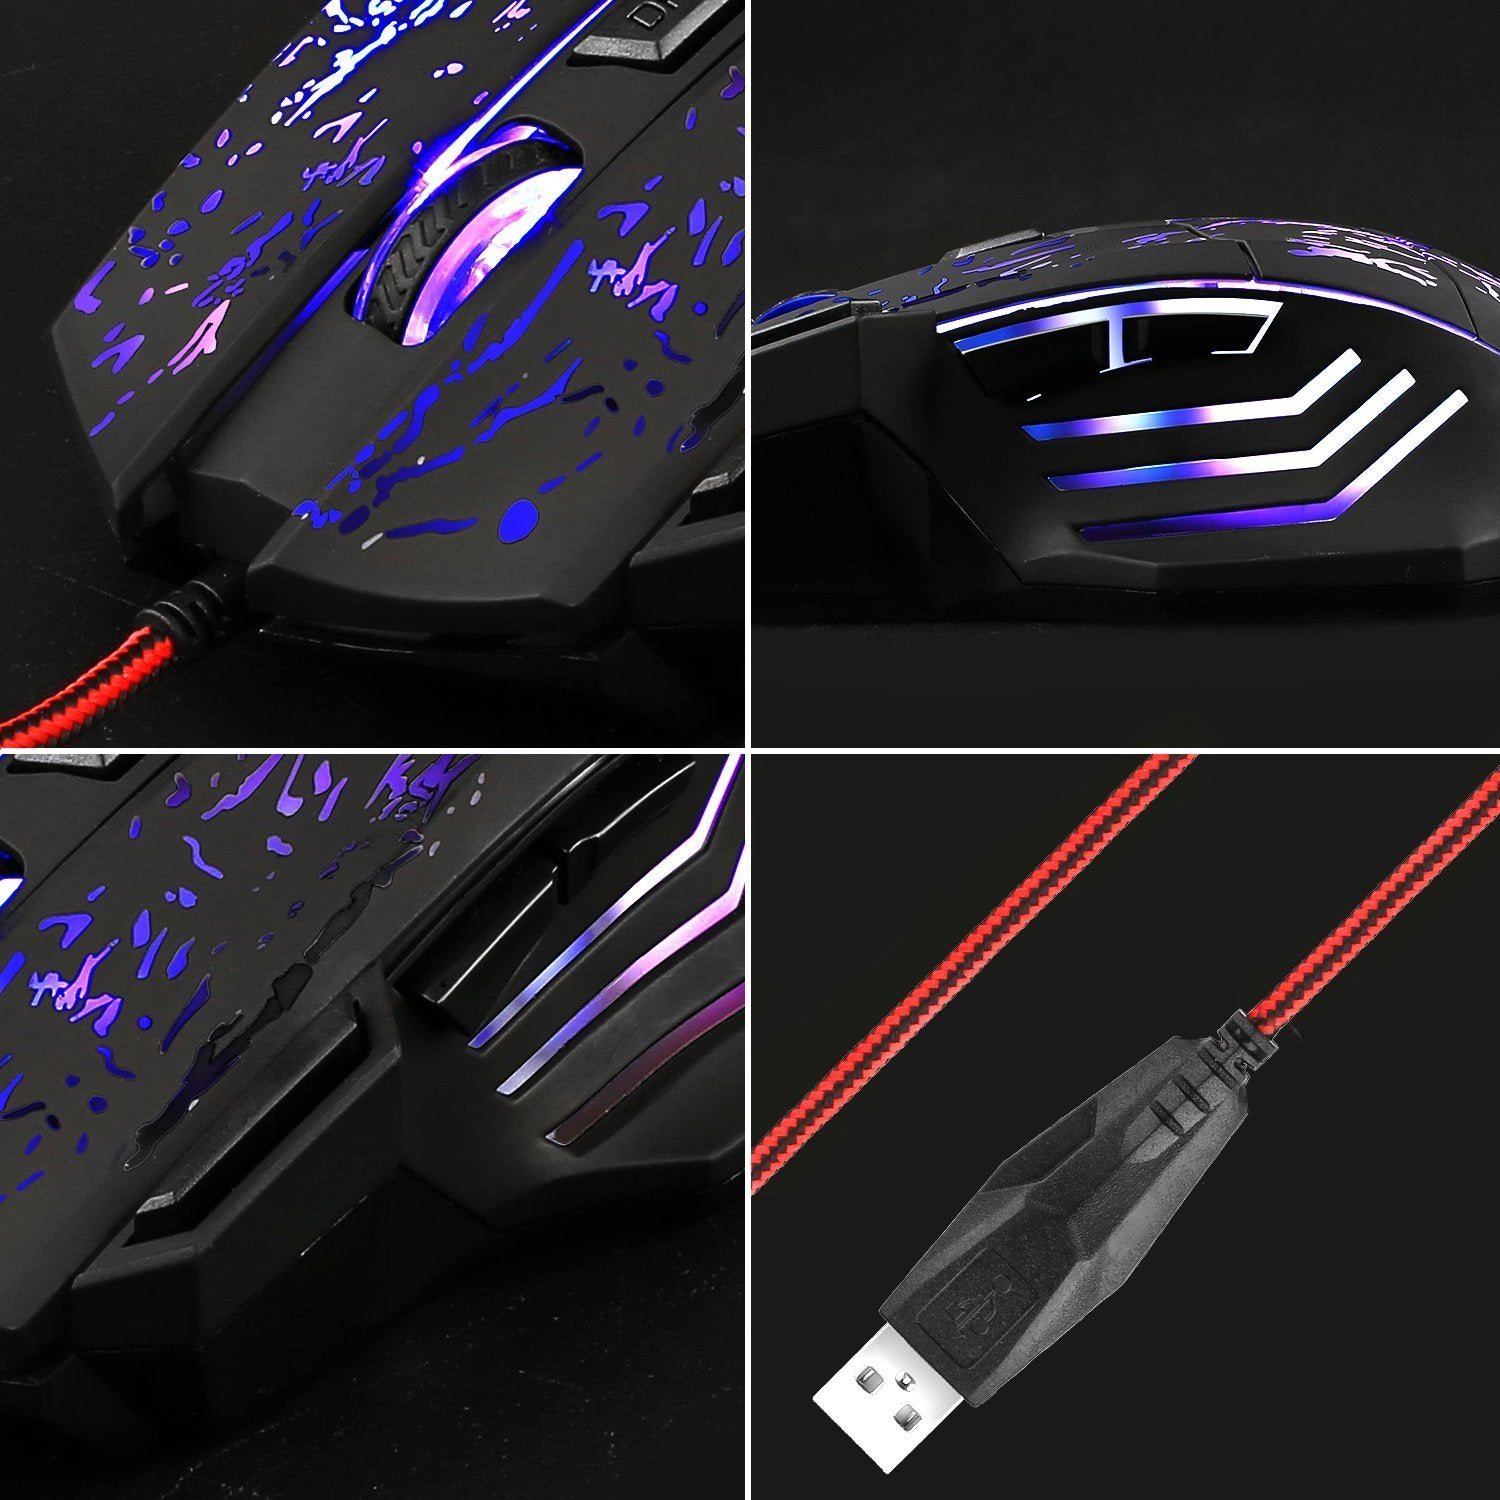 AUKEY KM-C1 RGB Gaming Mouse